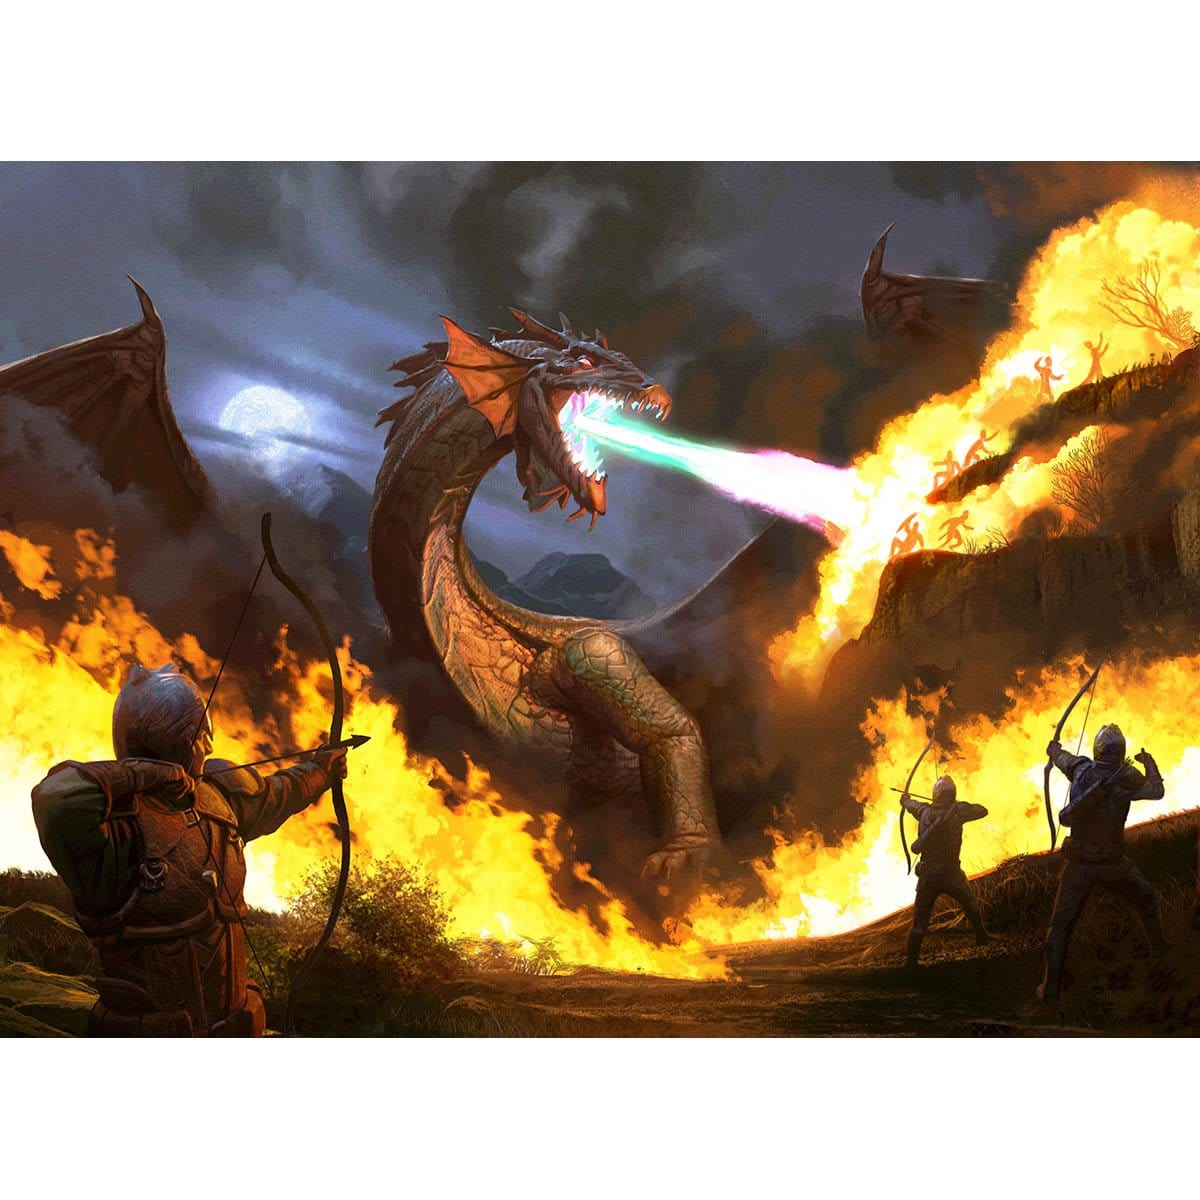 Mana-Charged Dragon Print - Print - Original Magic Art - Accessories for Magic the Gathering and other card games